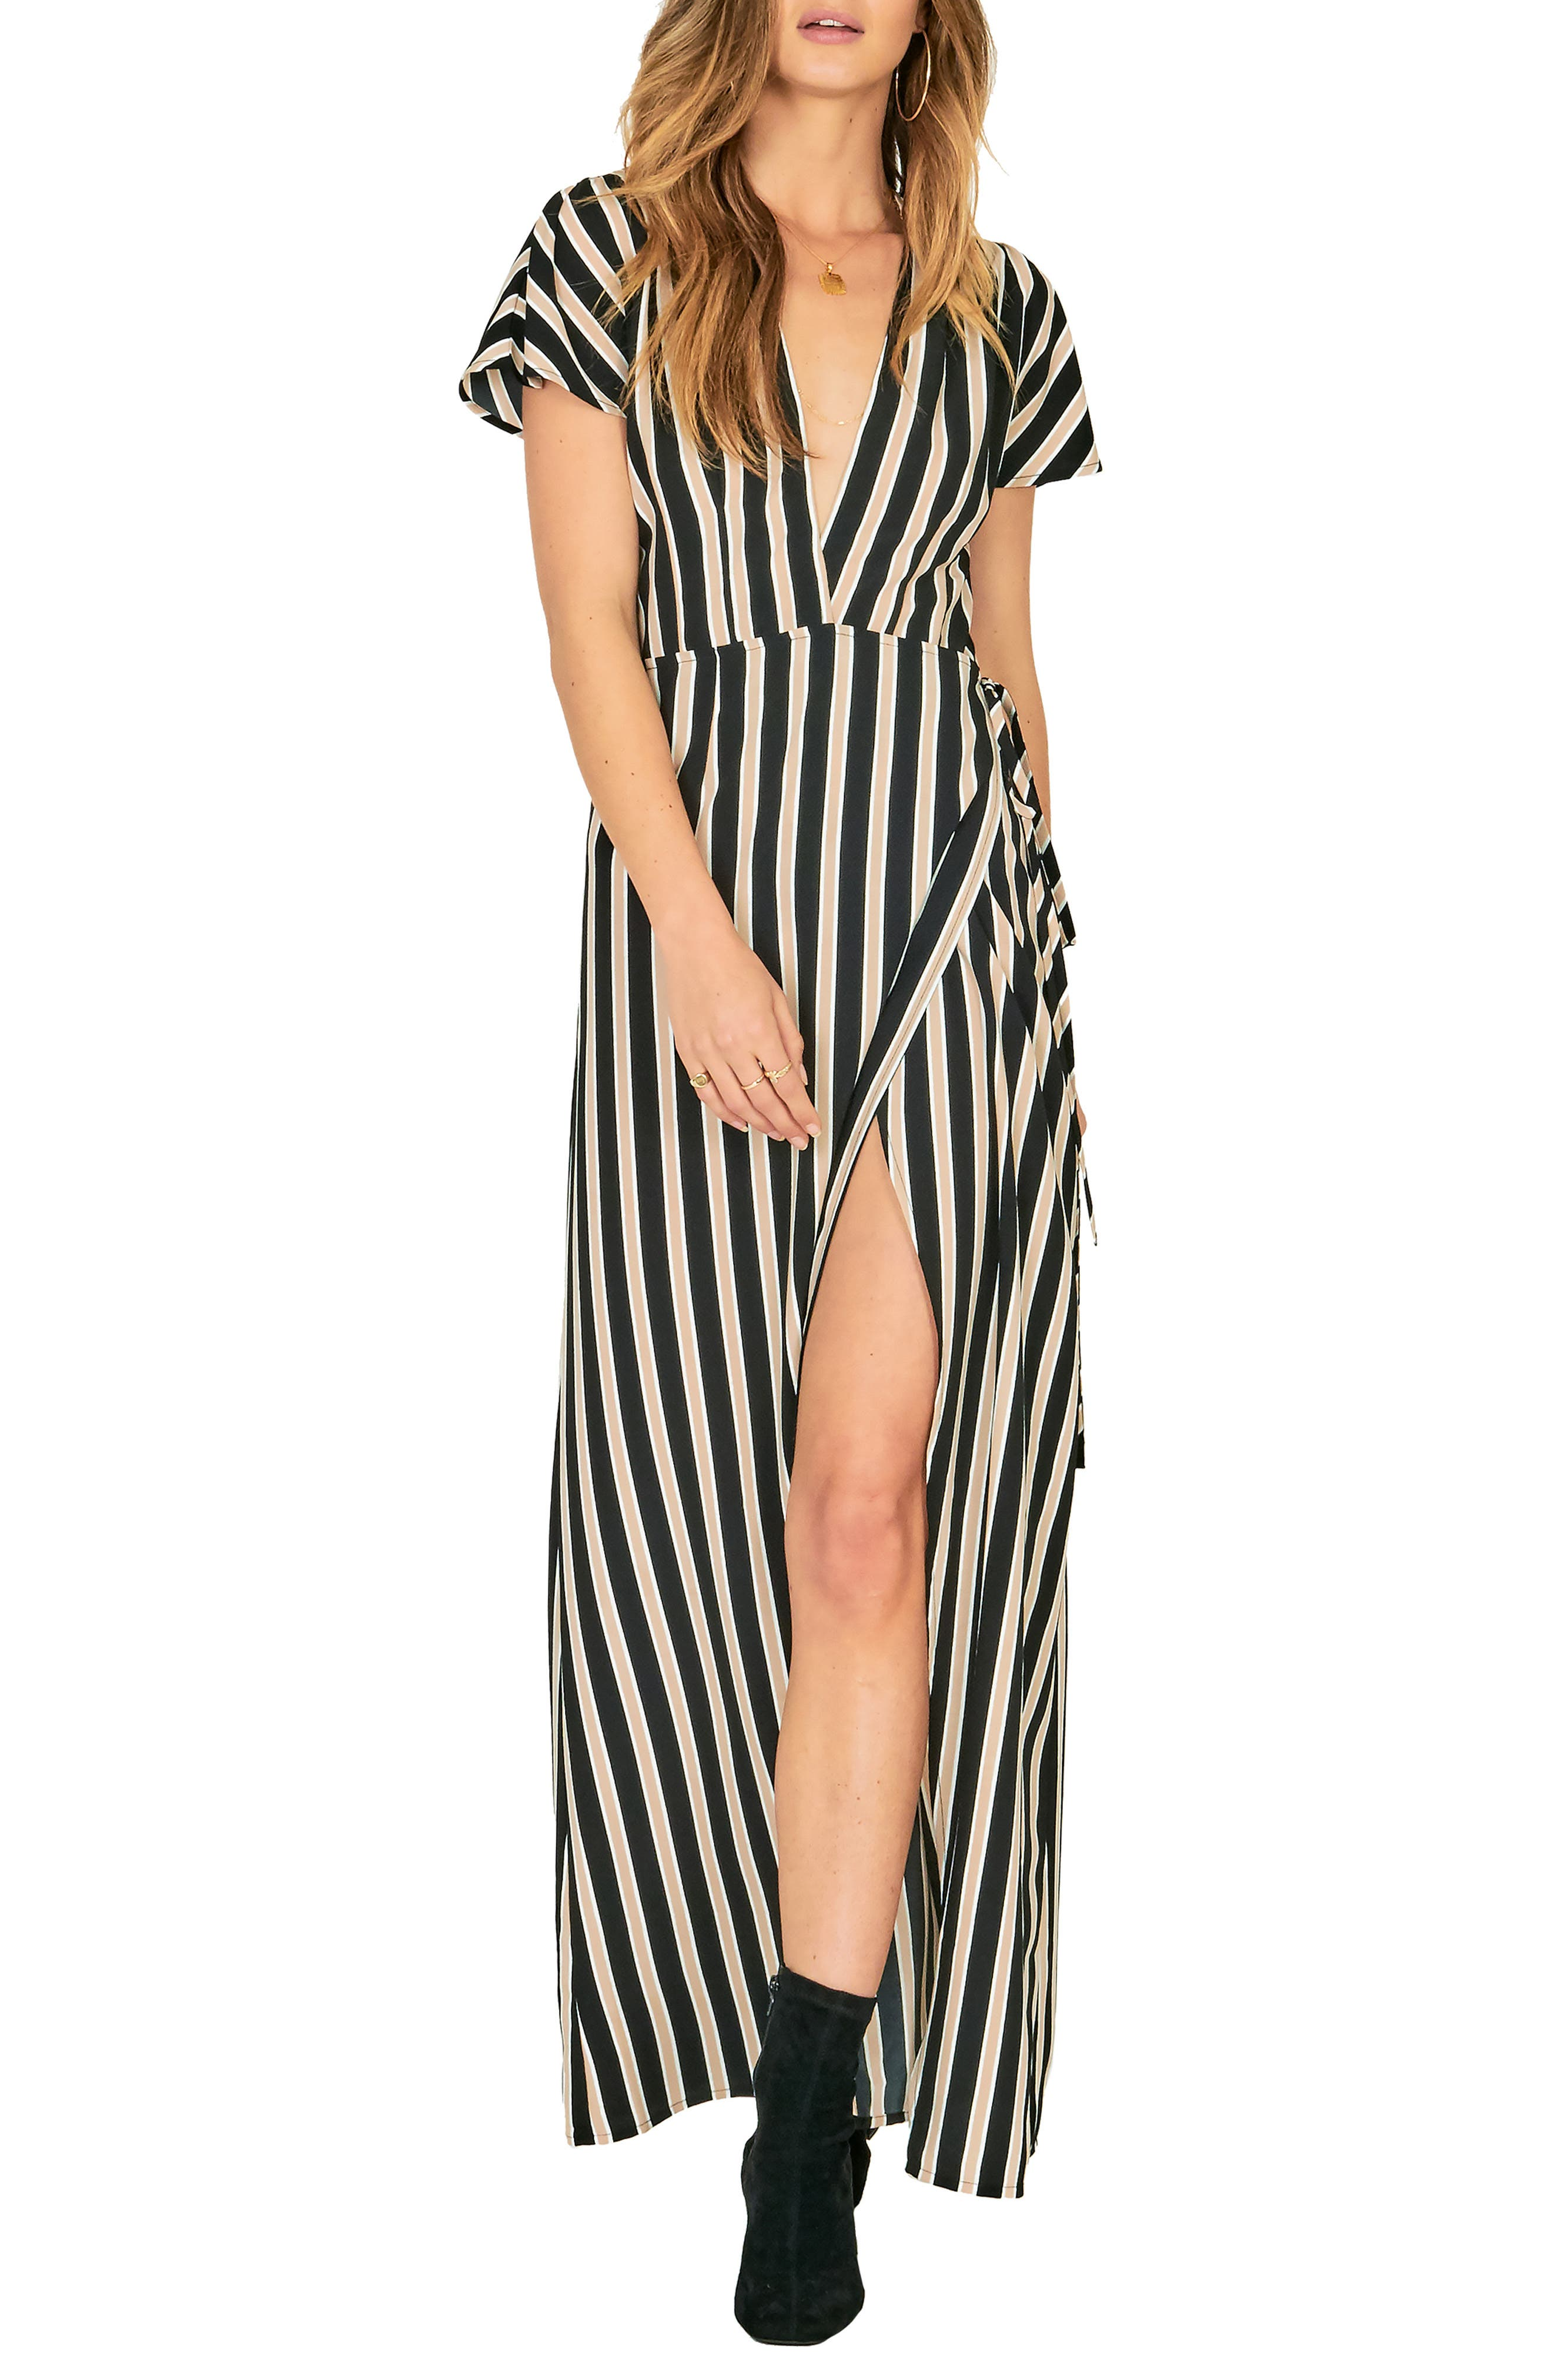 Fit to Be Tied Maxi Dress,                             Main thumbnail 1, color,                             001